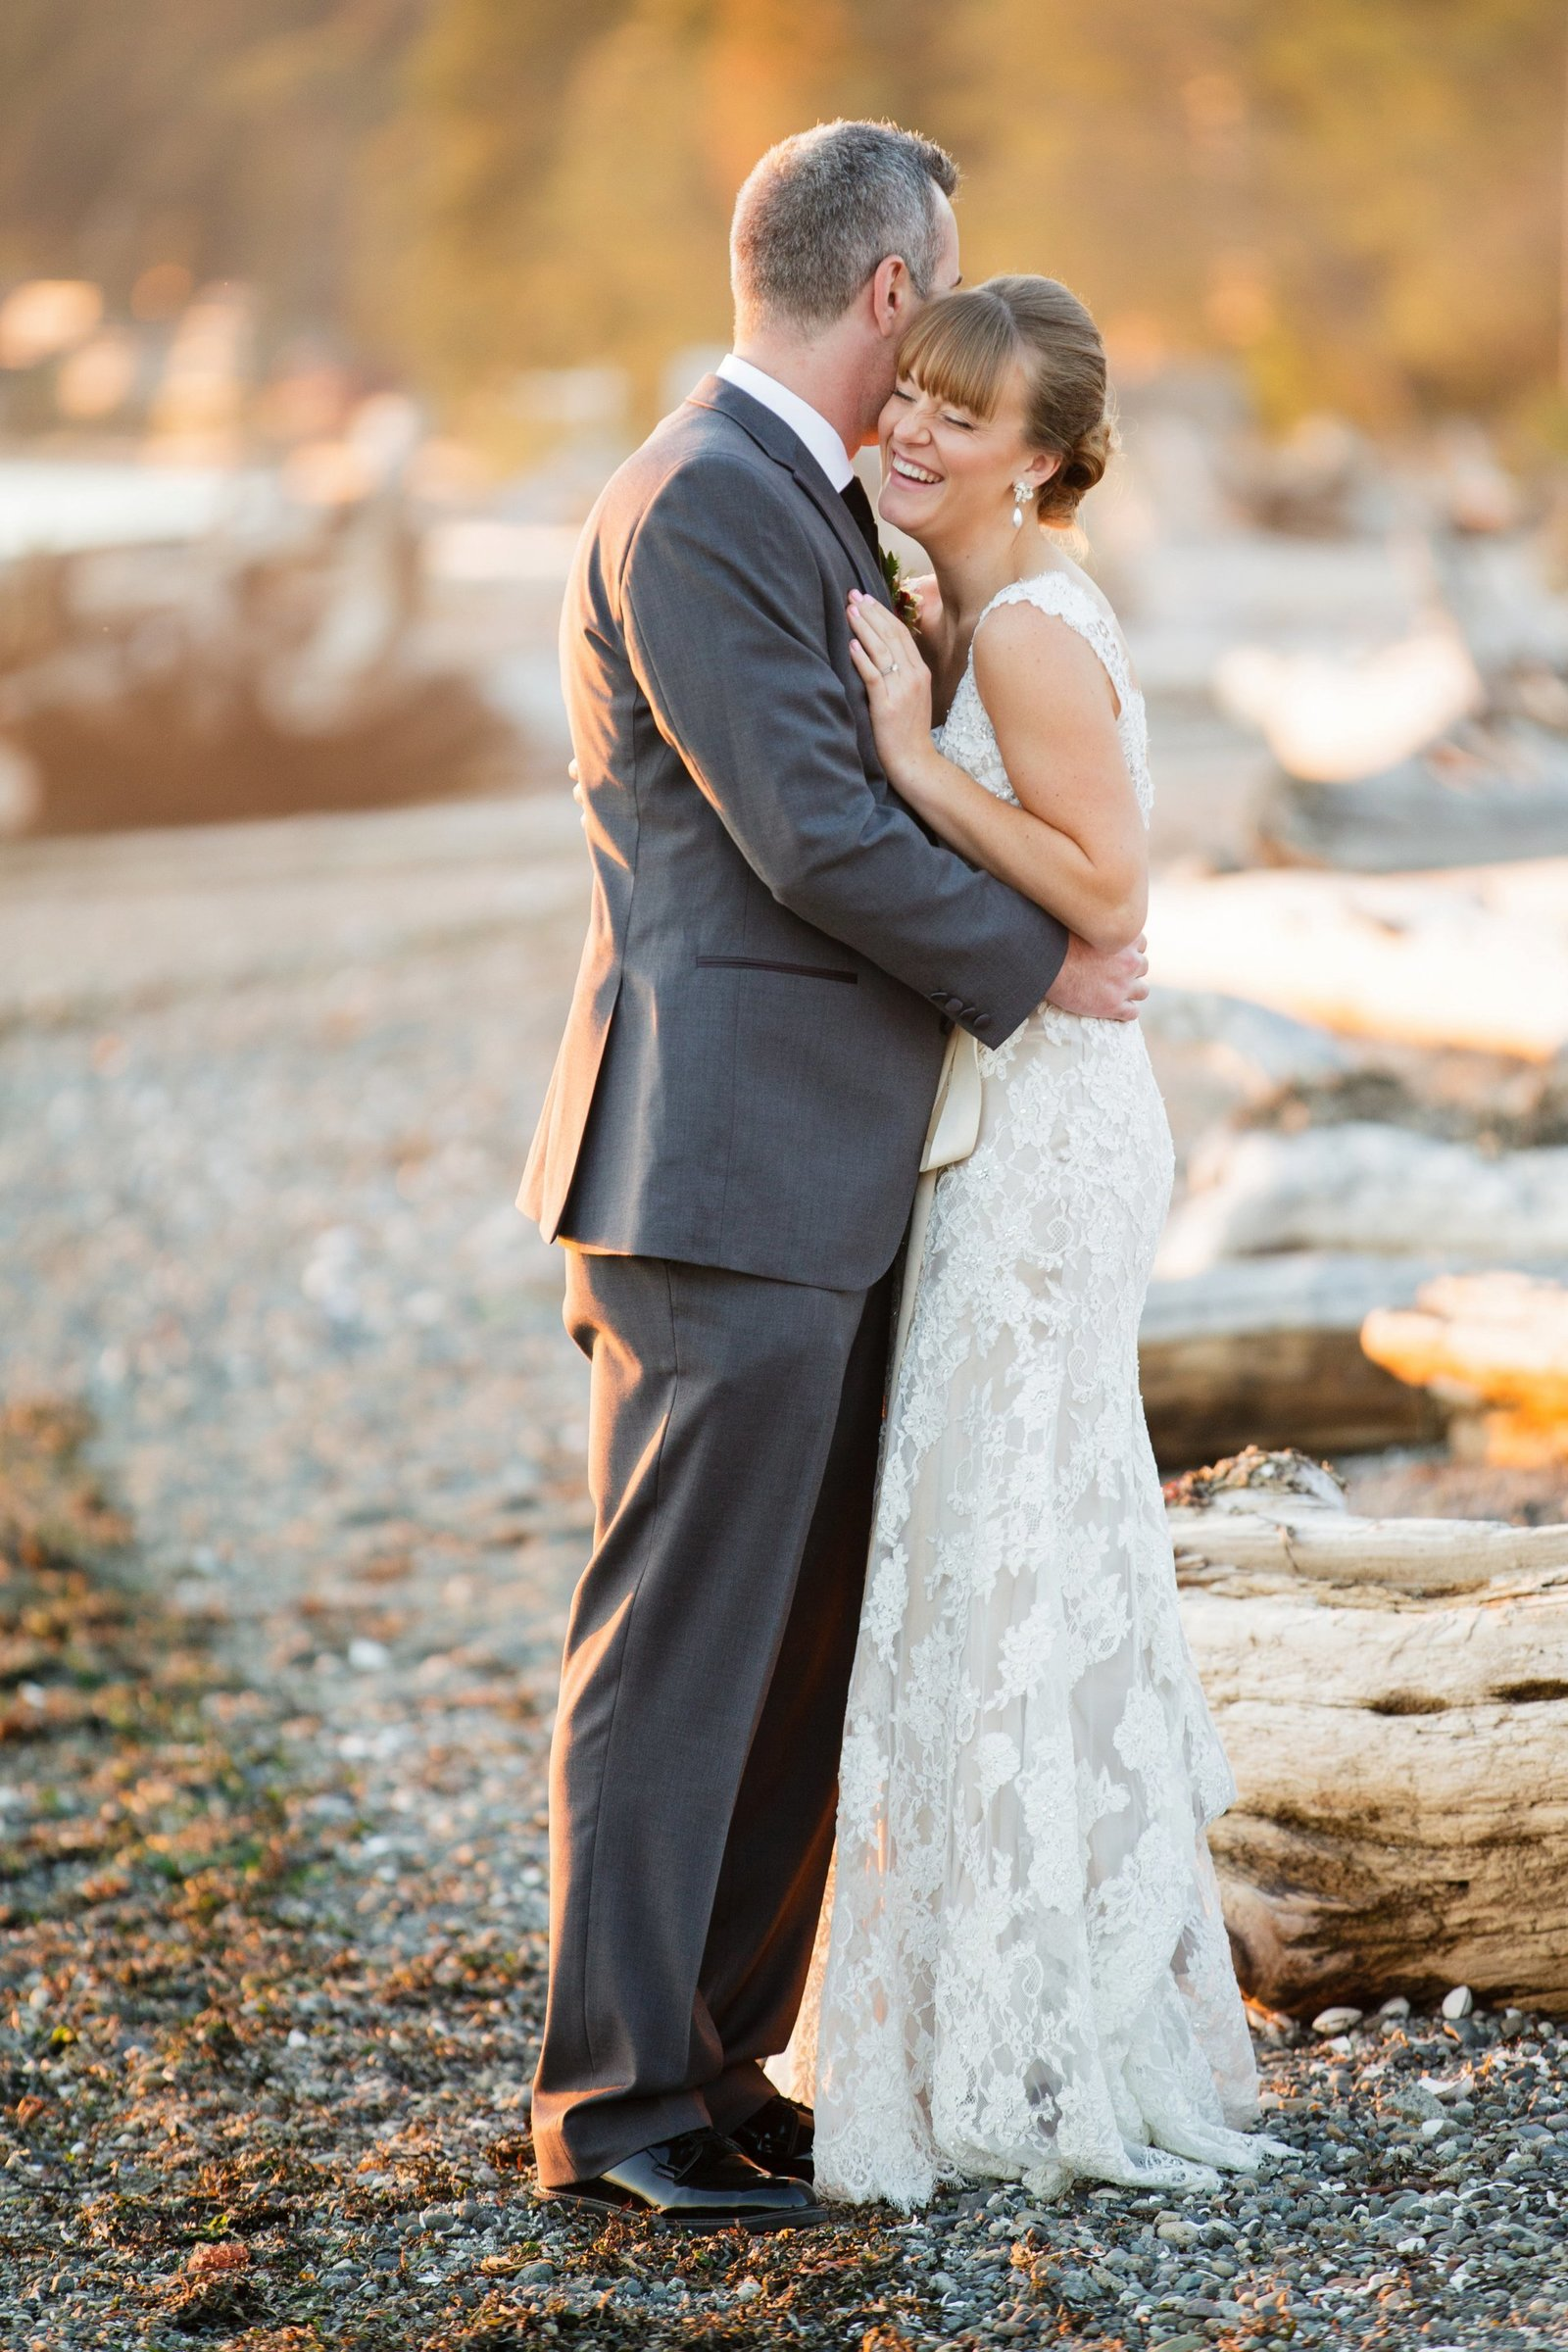 sunset-wedding-photos-on-beach-seattle